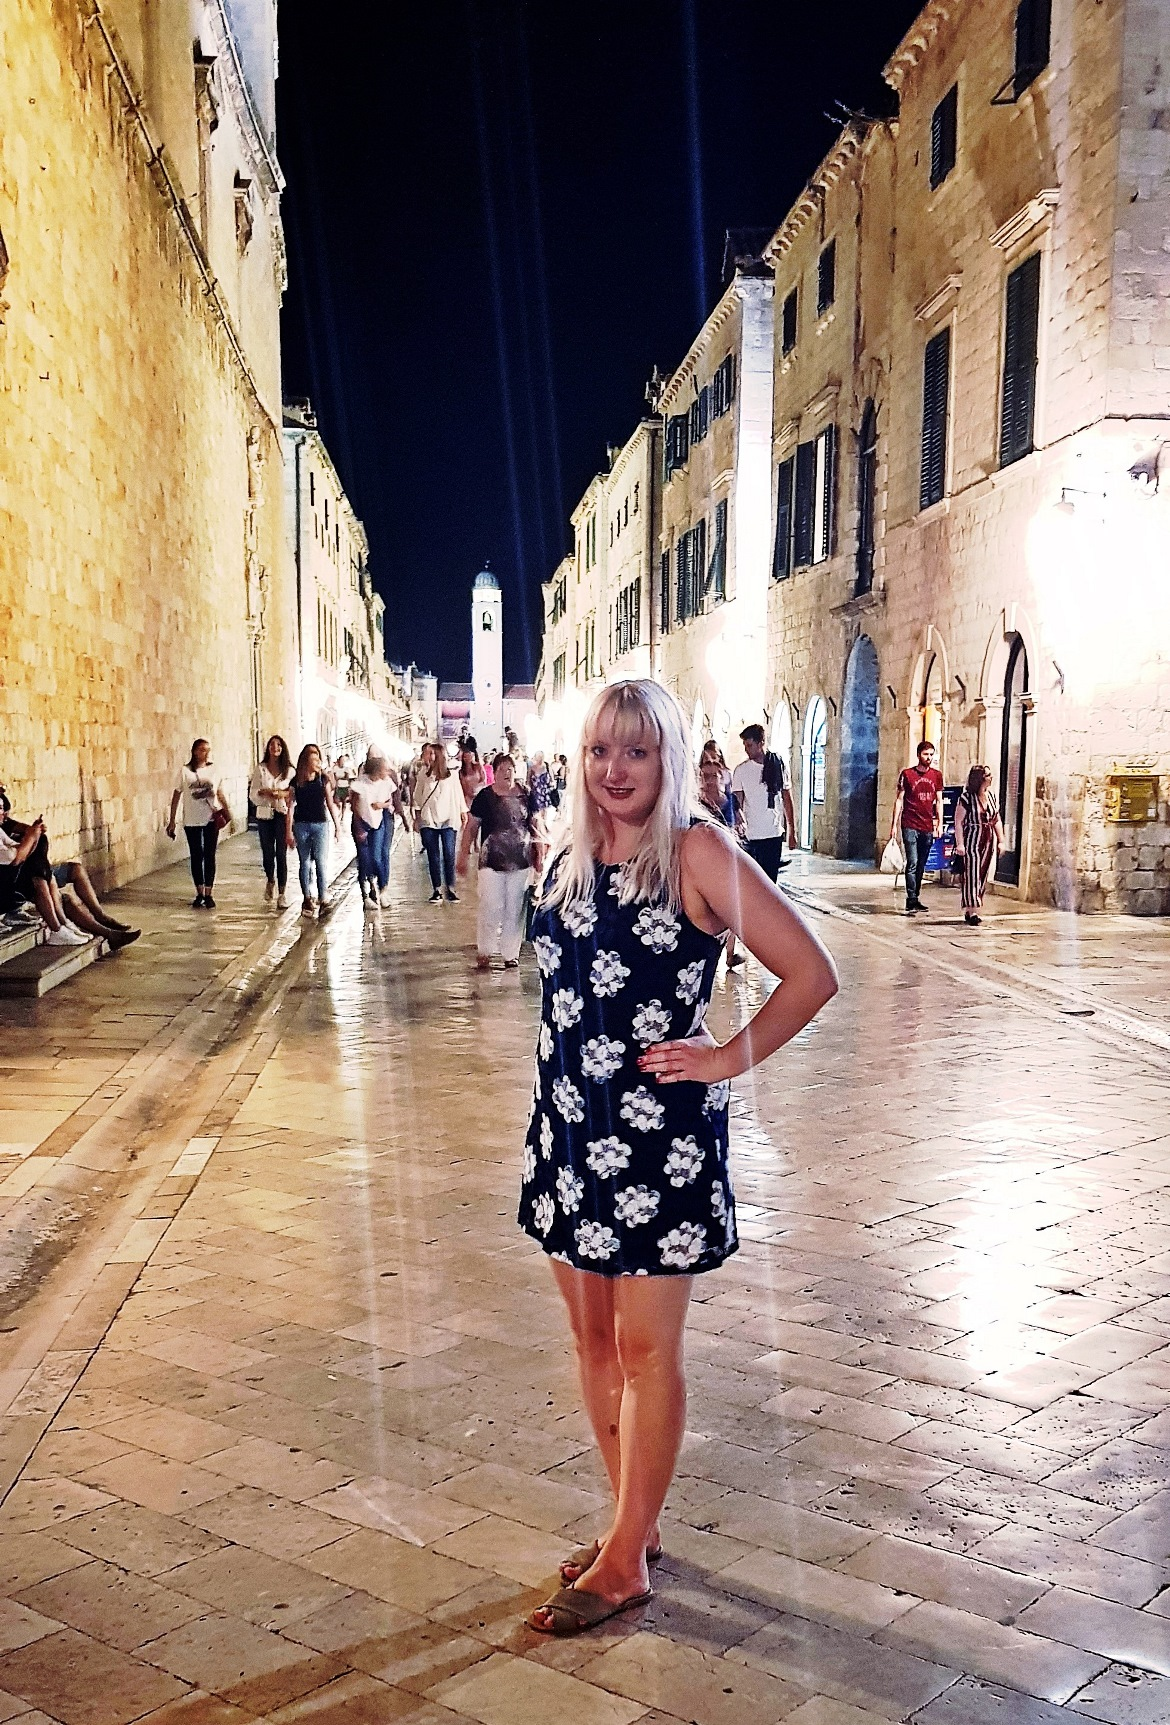 Dubrovnik, city of stone and light - Croatia in Photographs by BeckyBecky Blogs